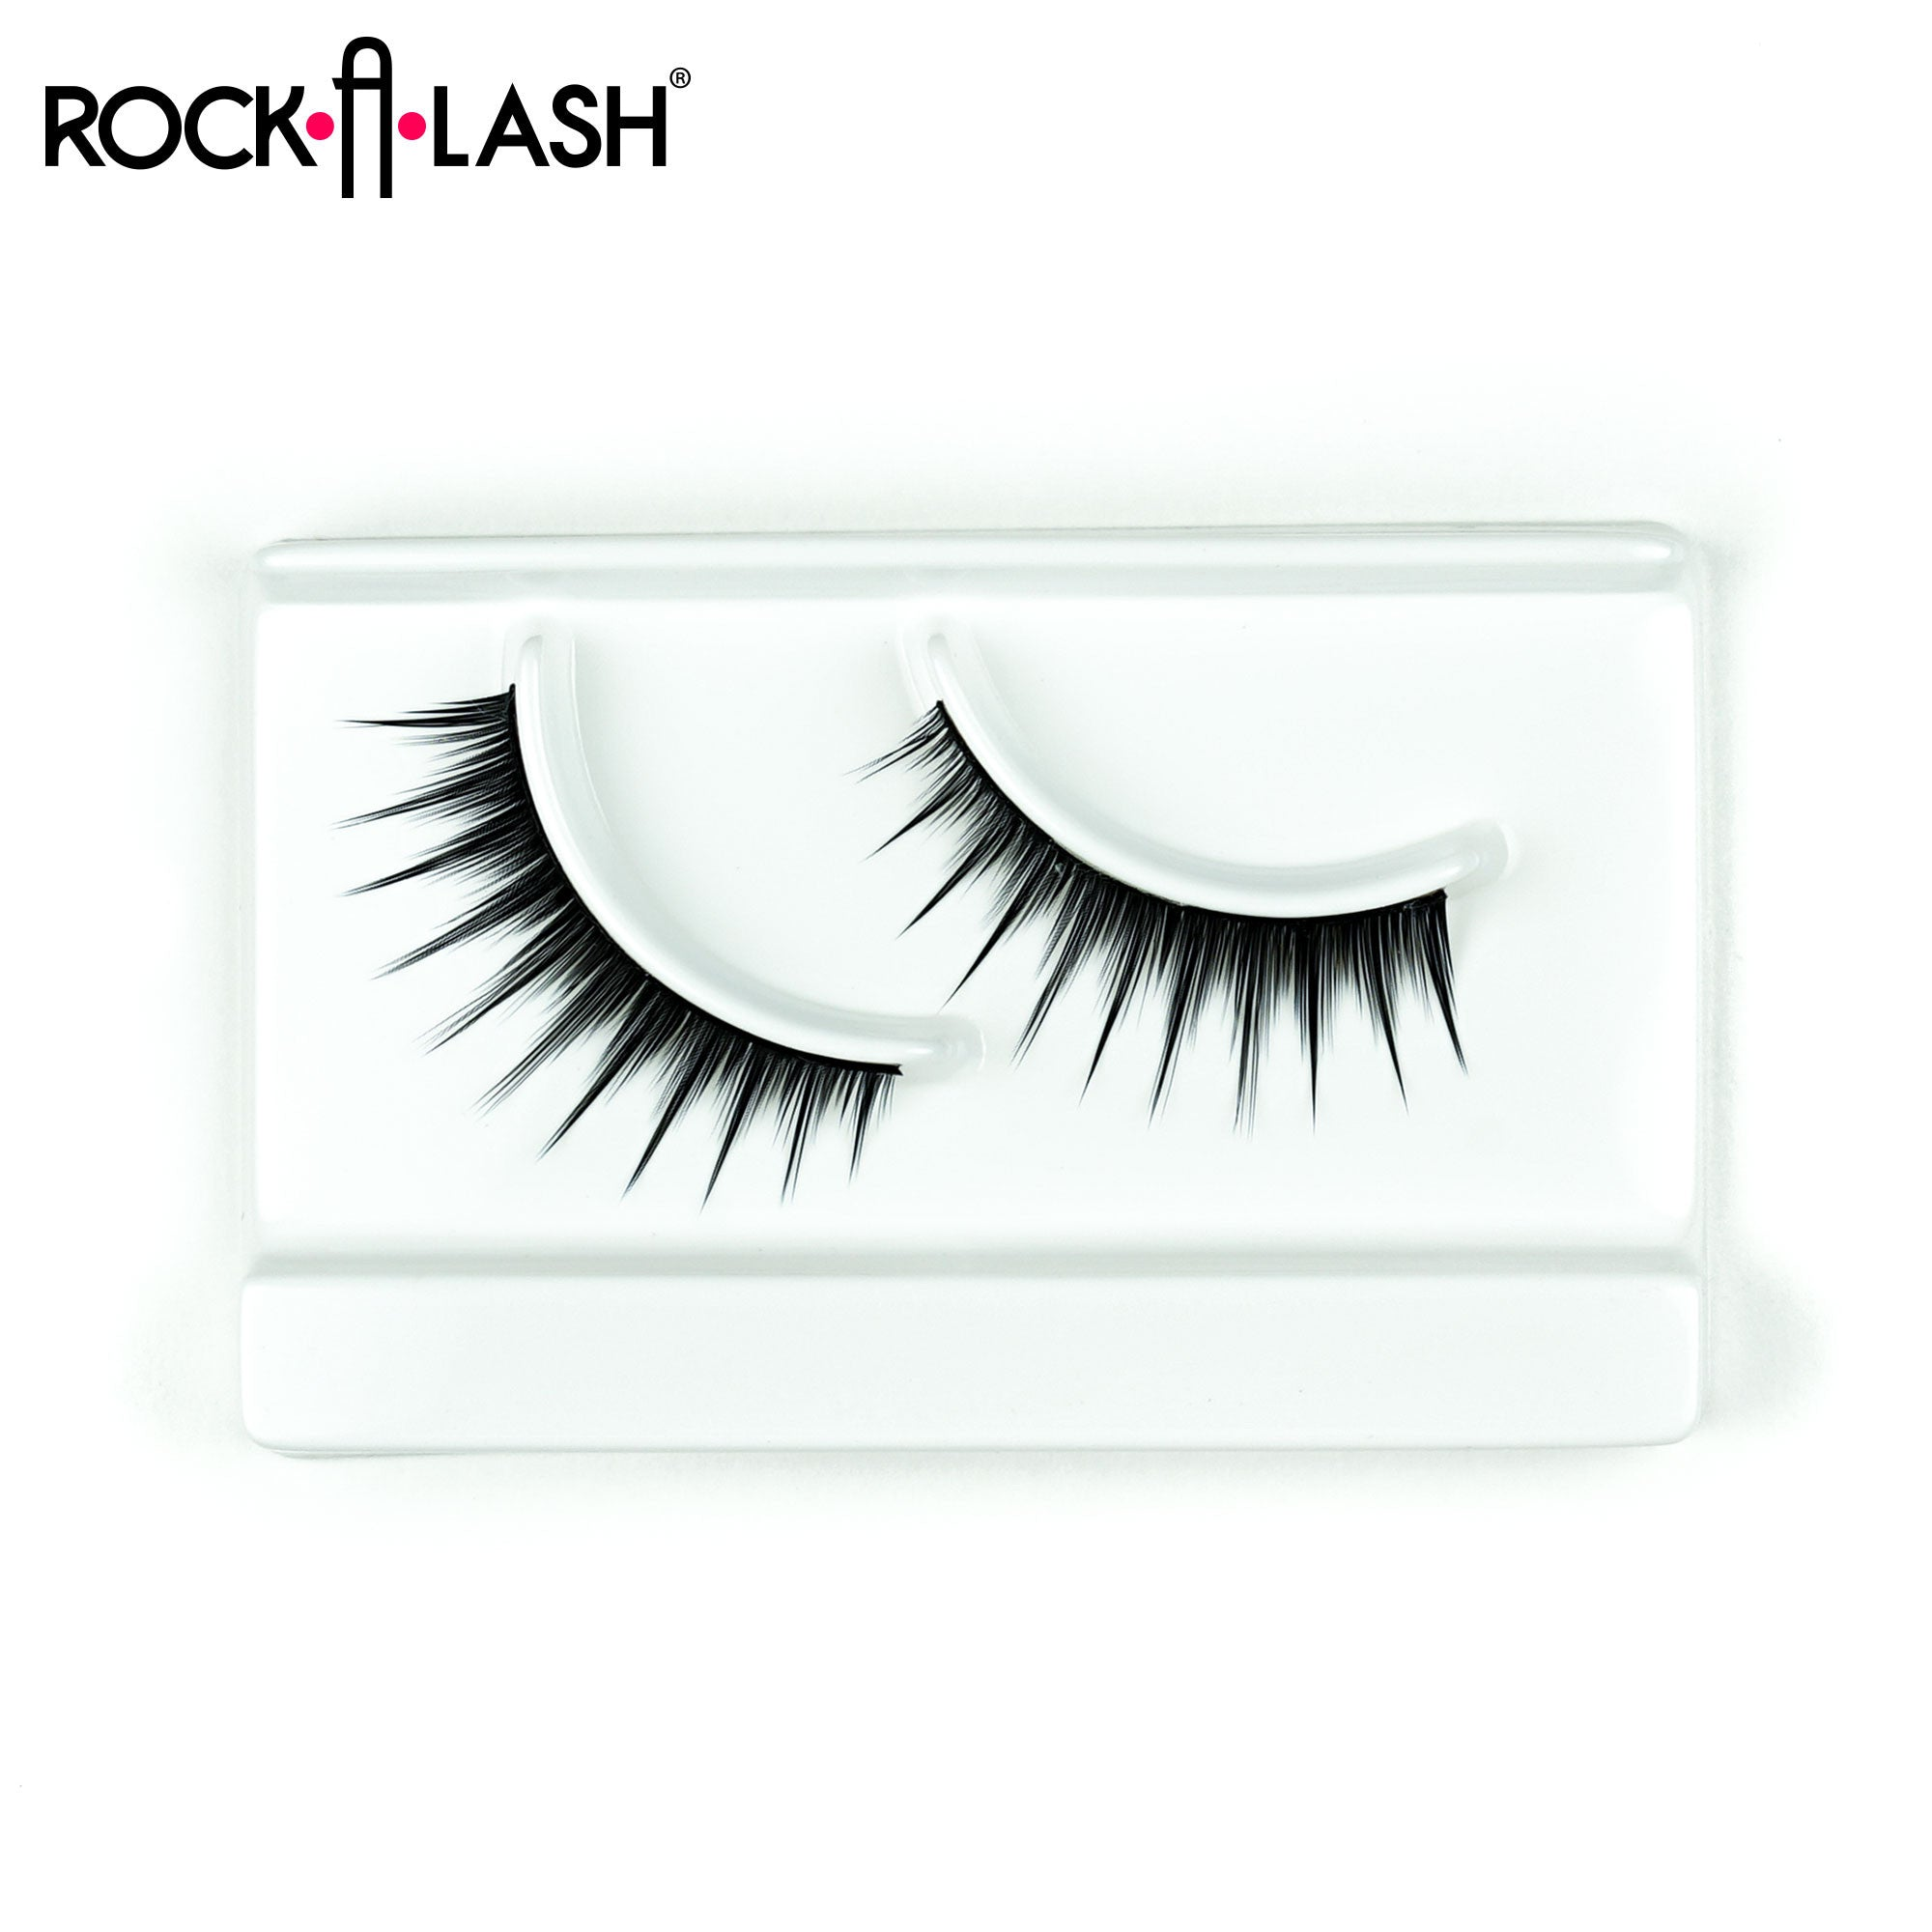 Rock-A-Lash® <br> #3 - Born to Flirt™ - 1 Pair